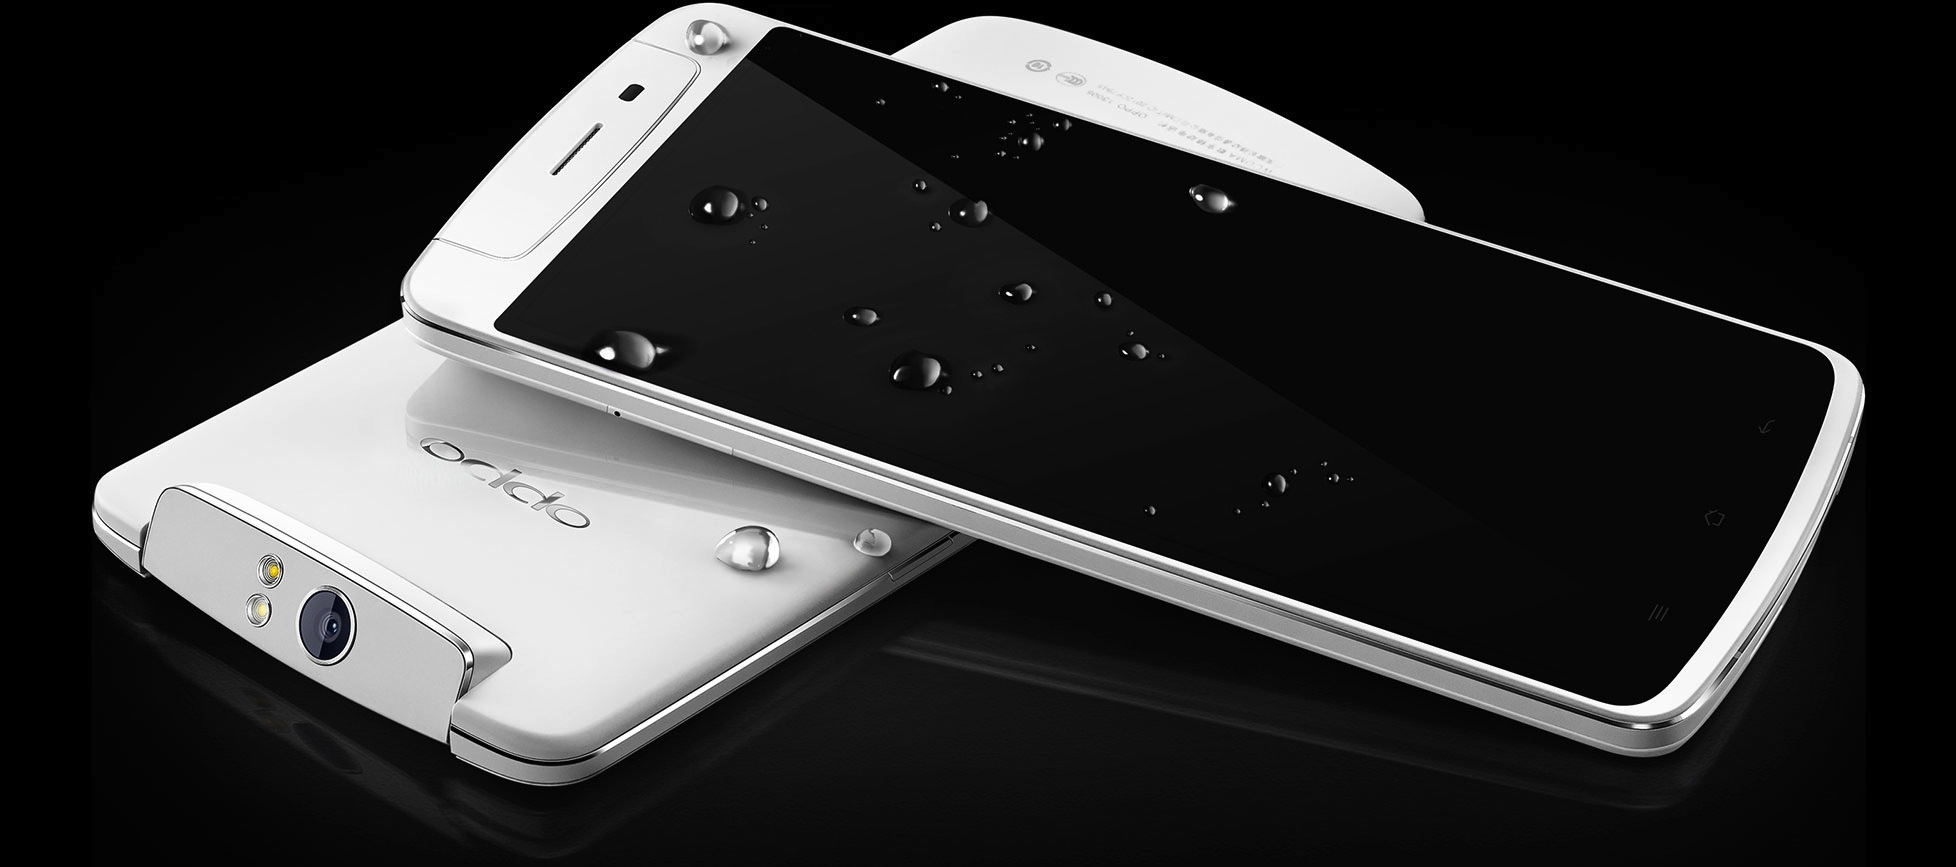 The CyanogenMod Oppo N1 smartphone gets Google's approval, will ship on December 24